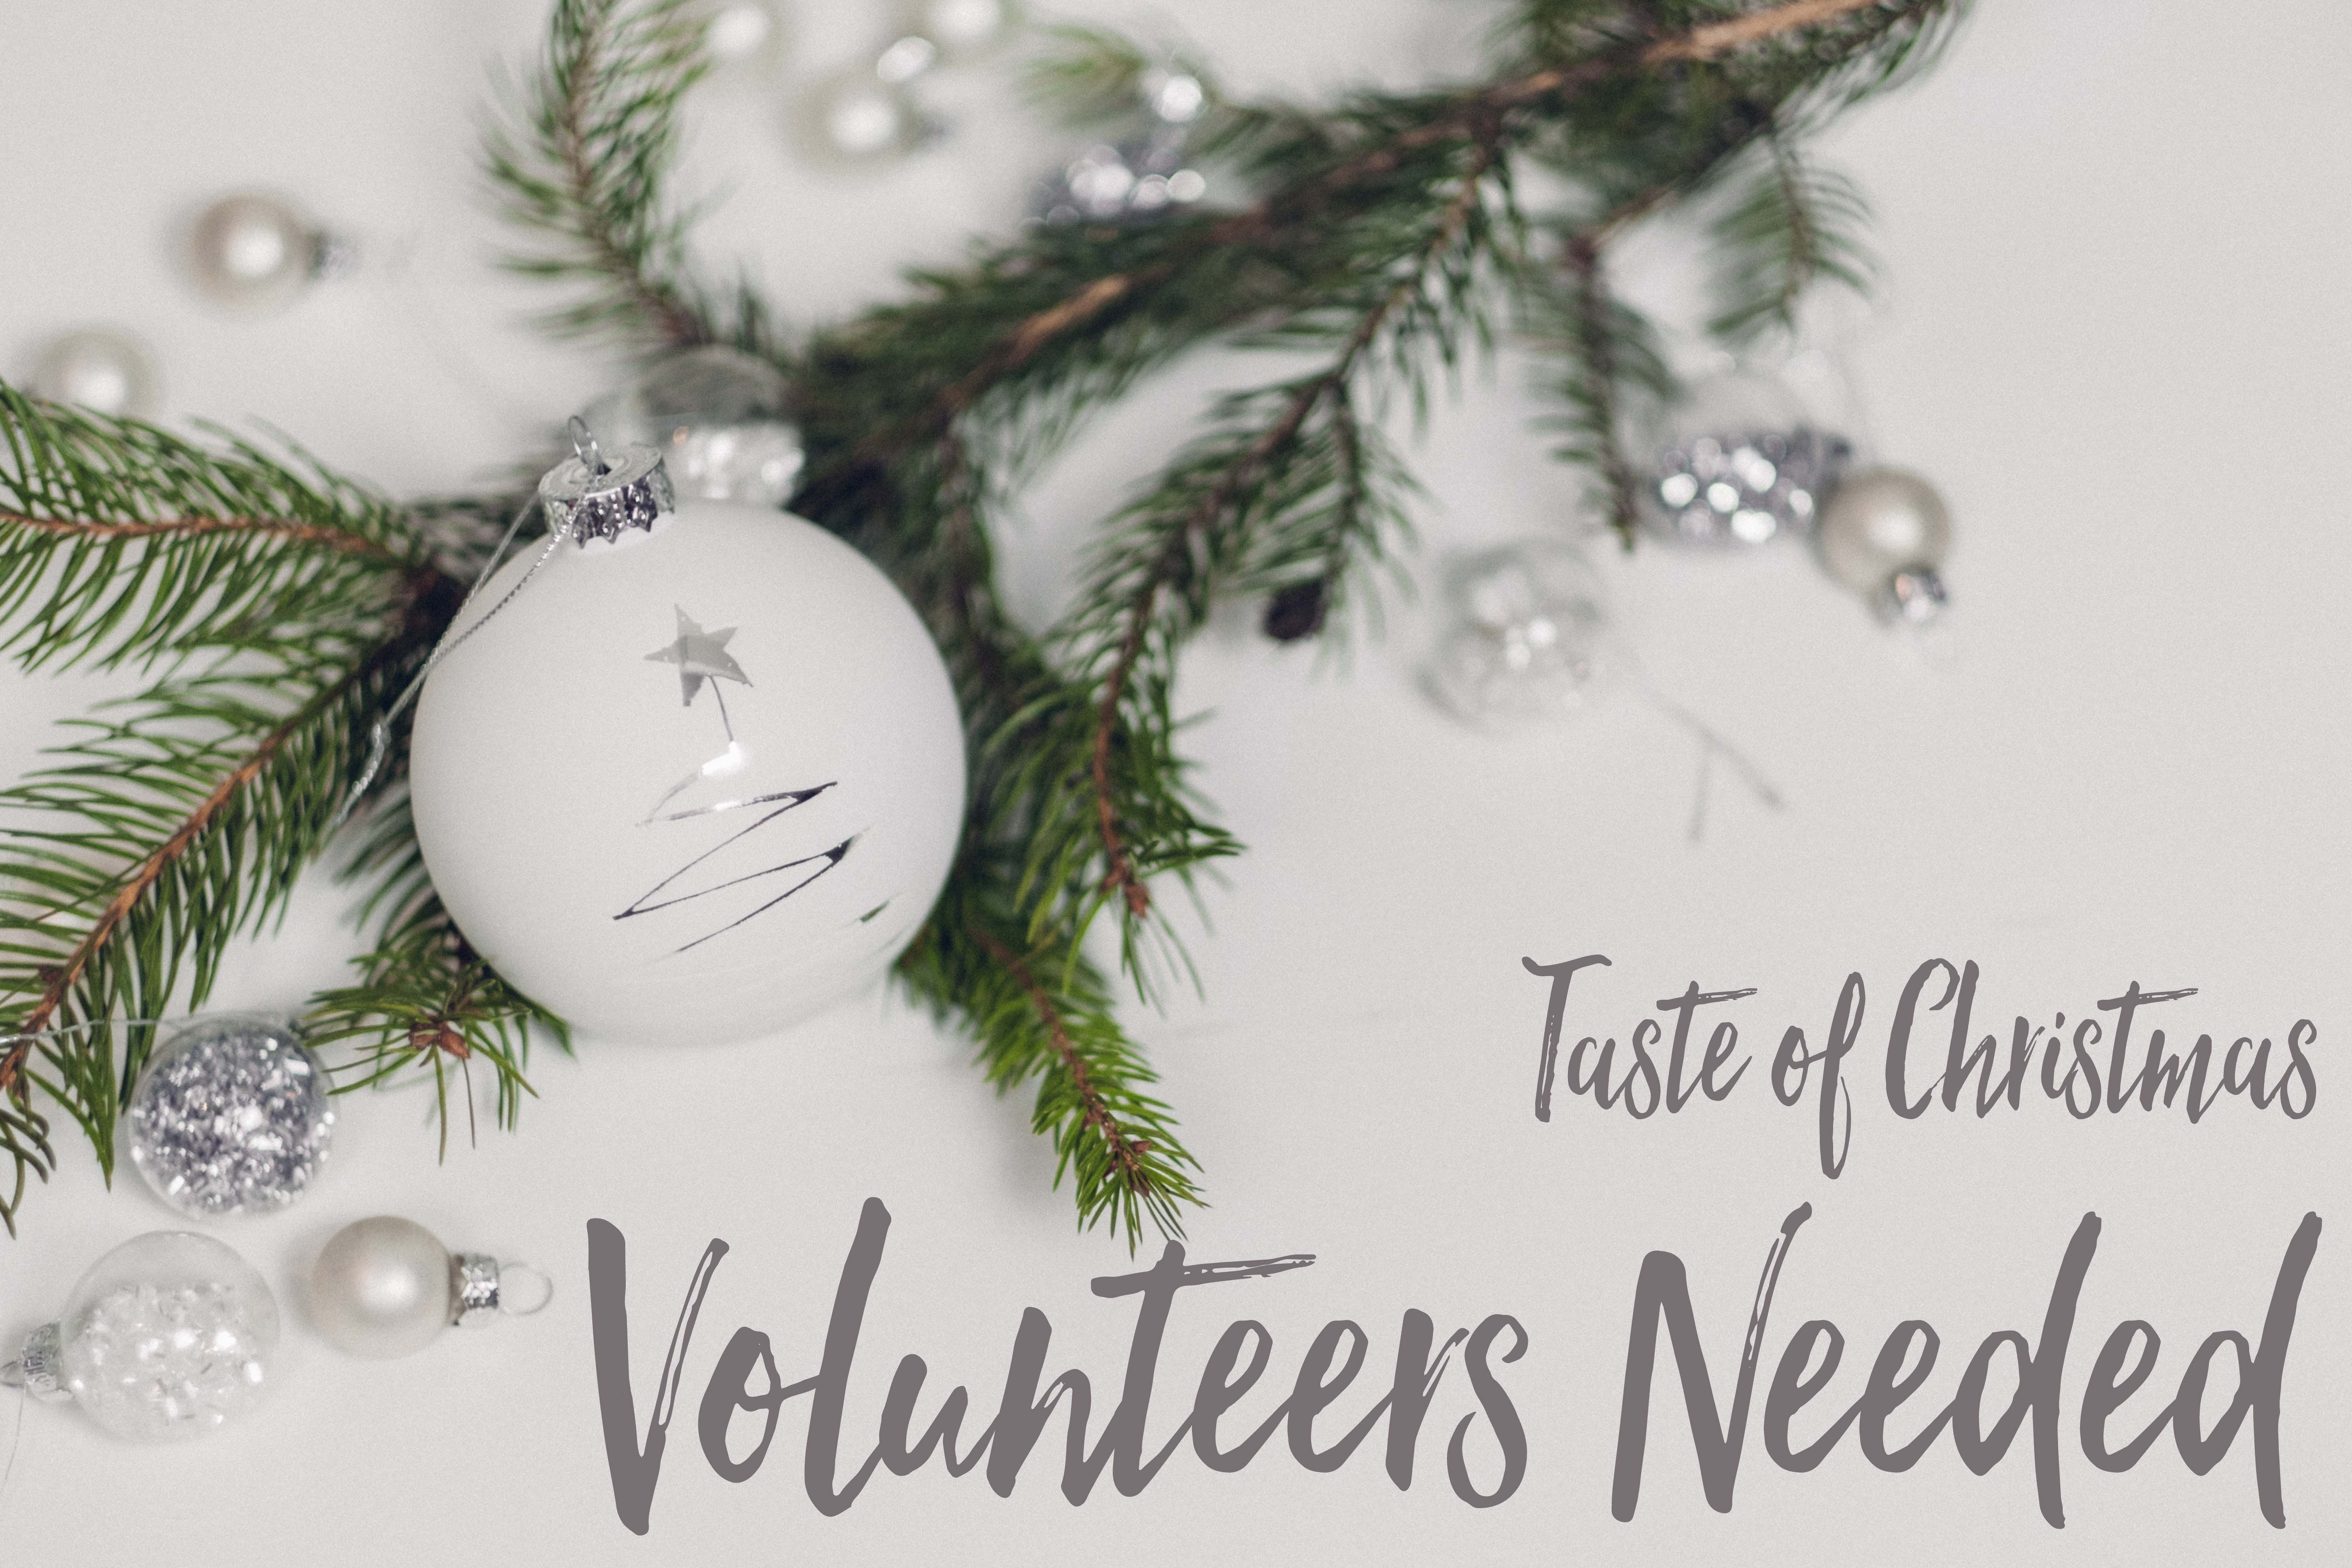 Taste of Christmas Volunteers